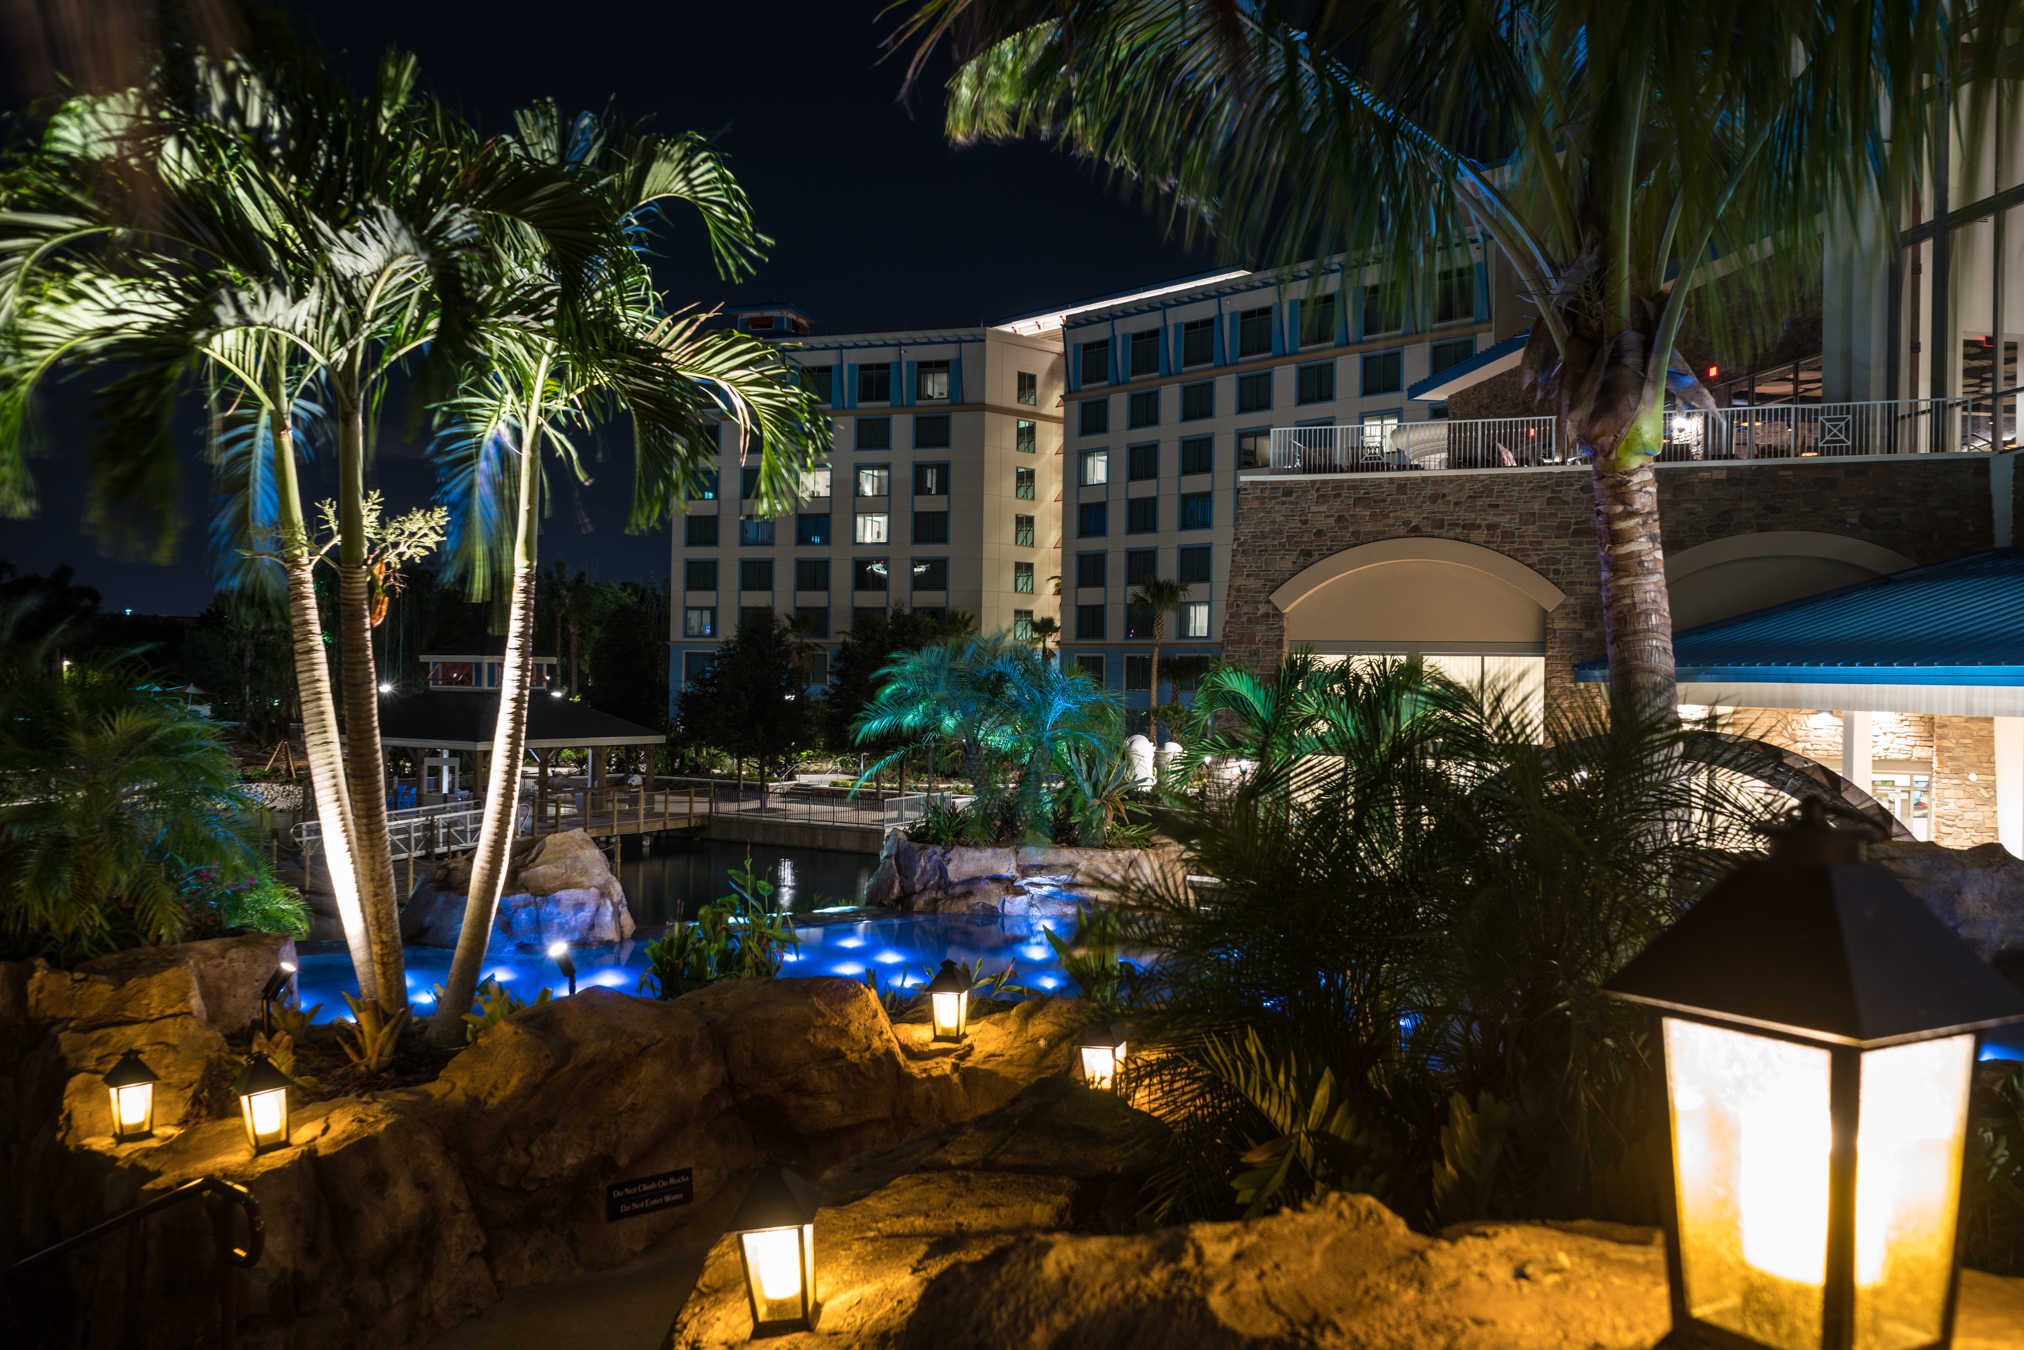 New 'Caribbean Carnaval' event coming to Loews Sapphire Falls Resort